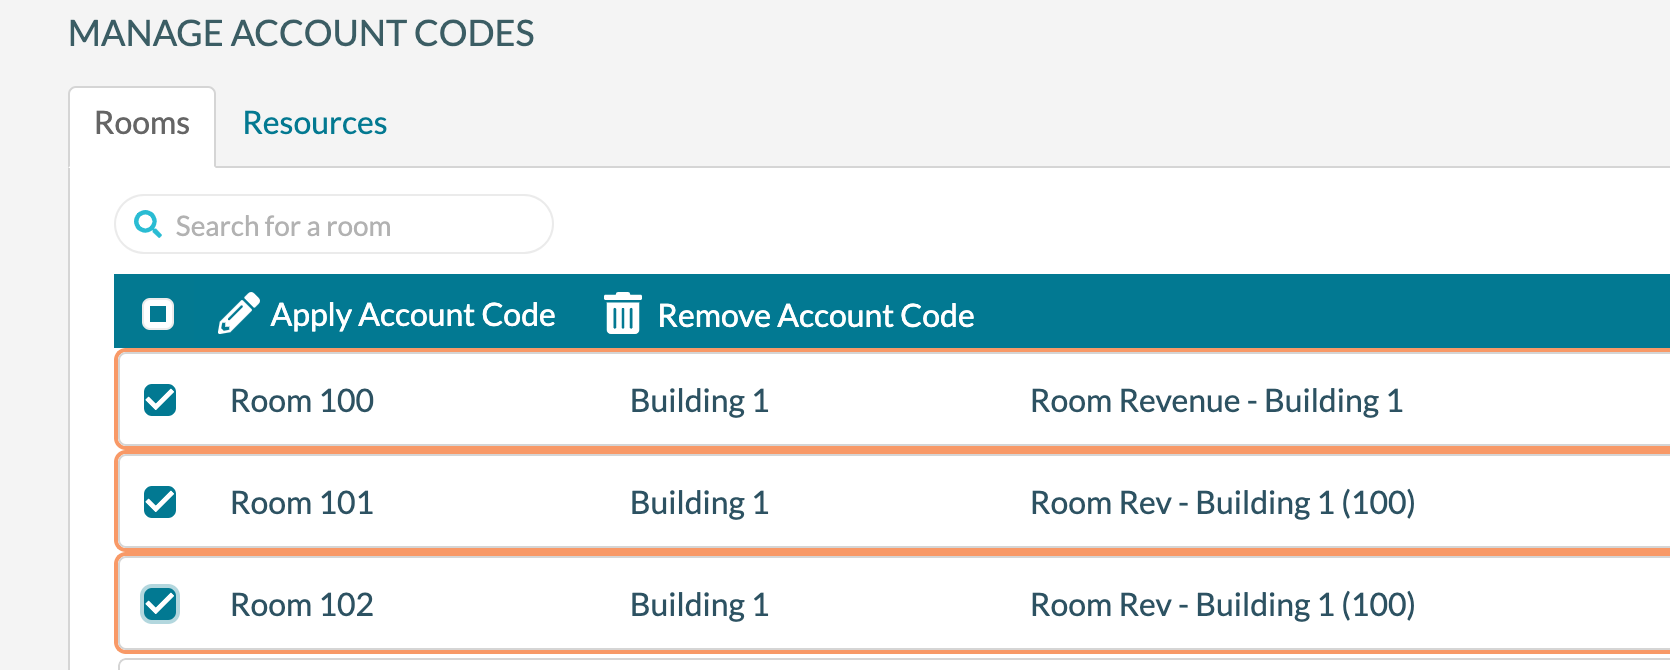 Account Codes - 2 selecting rooms